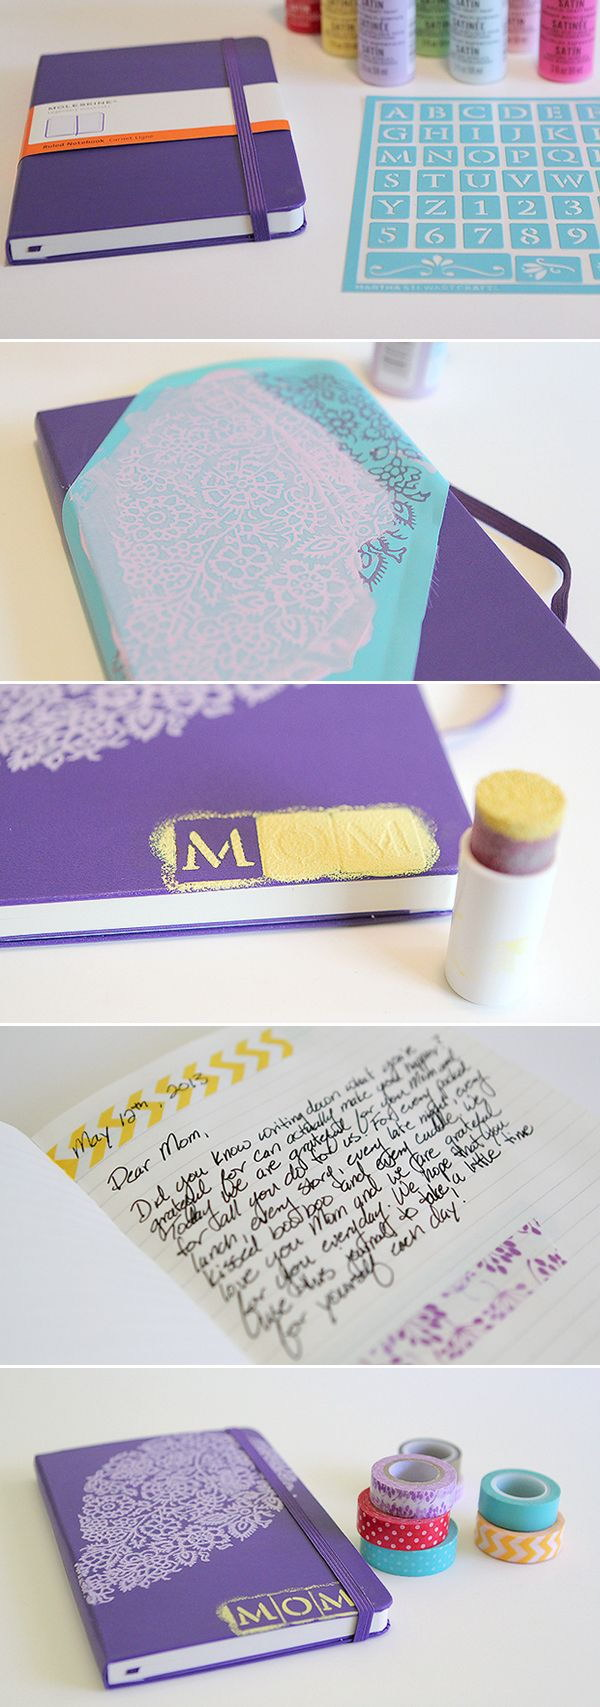 20 Heartfelt Diy Gifts For Mom Noted List